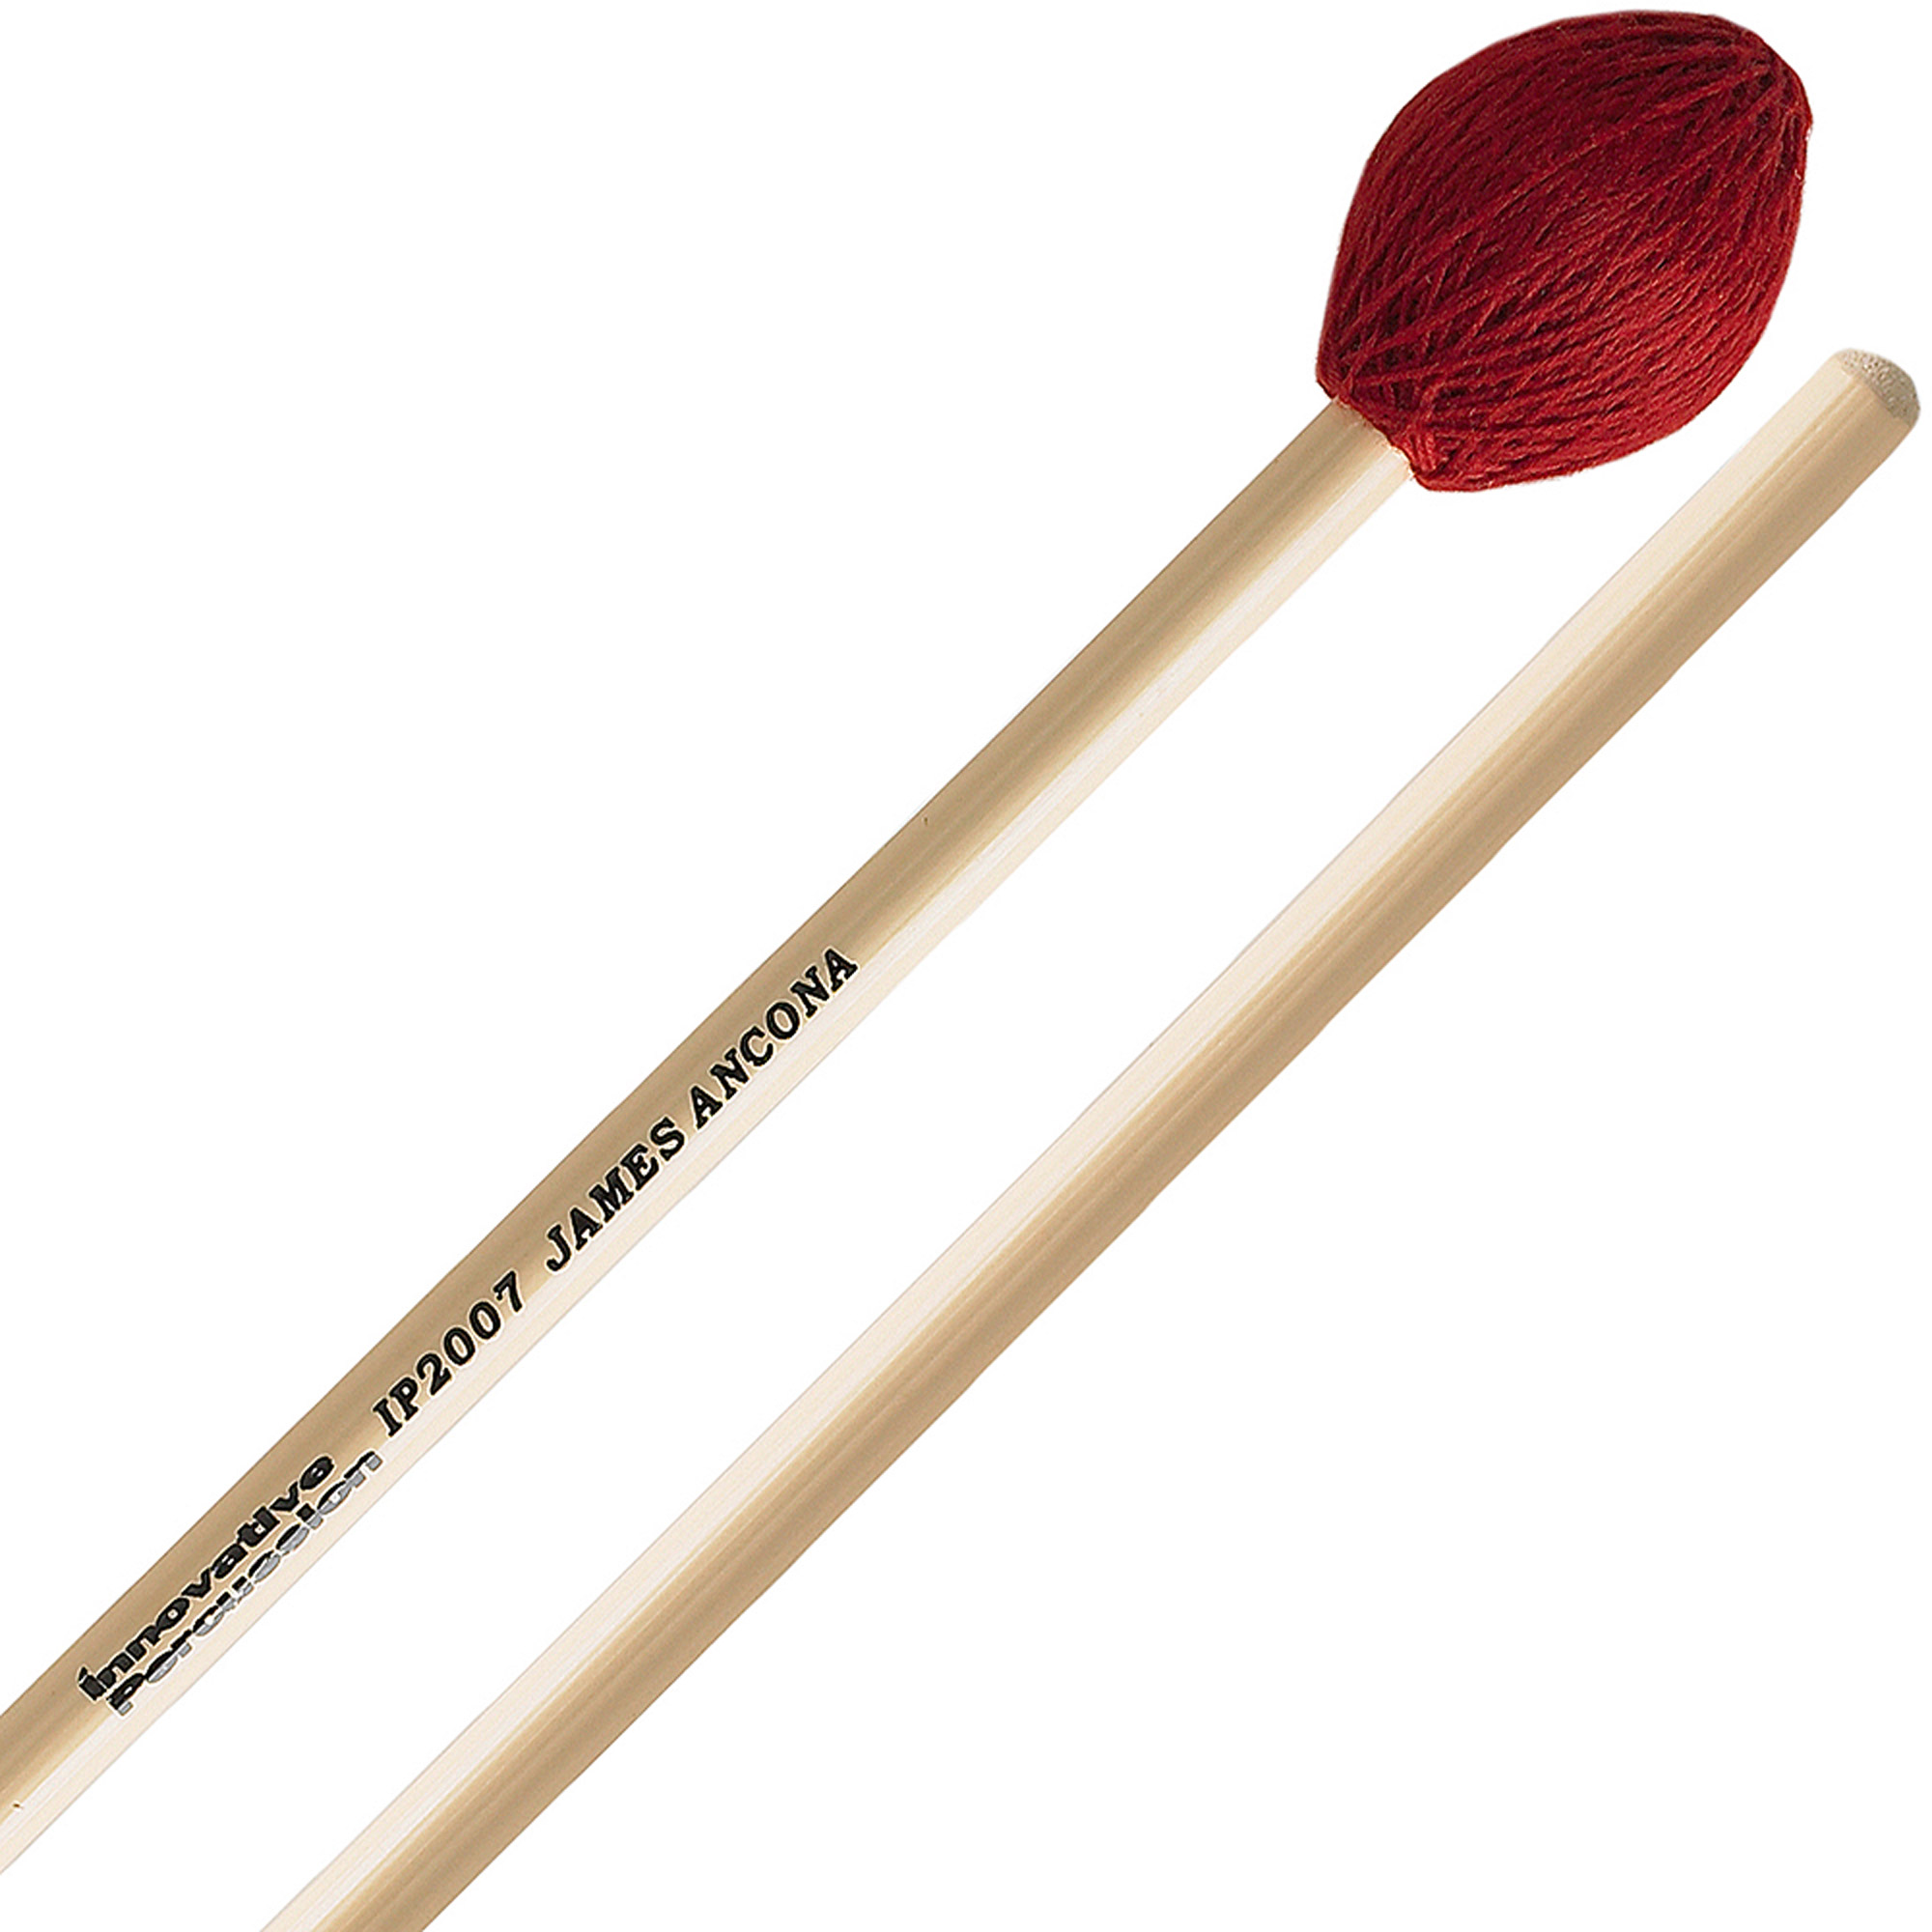 Innovative Percussion IP2007 James Ancona Series Hard Vibraphone Marimba Mallets w  Rattan... by Innovative Percussion